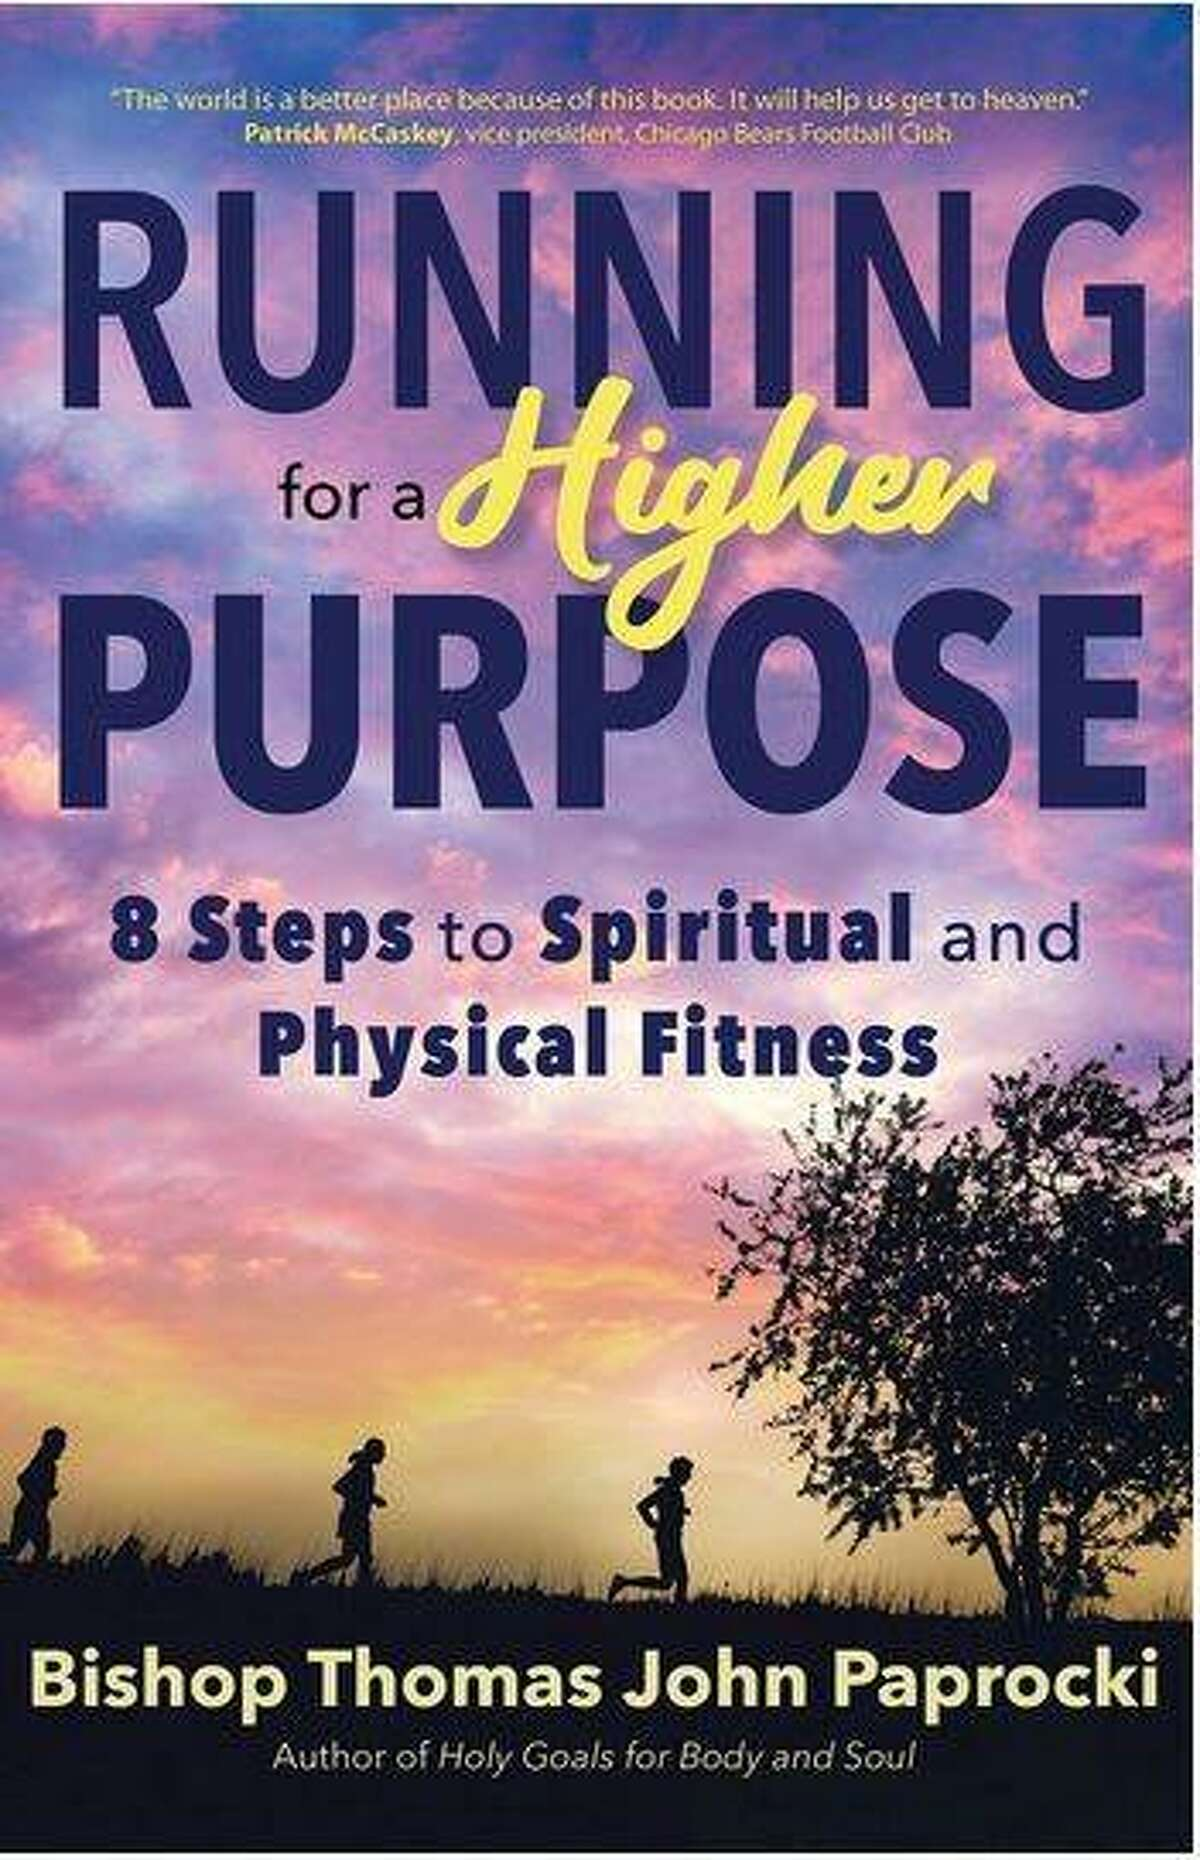 Bishop Thomas John Paprocki has published In Running for a Higher Purpose discussing the physical and spiritual benefits of running.